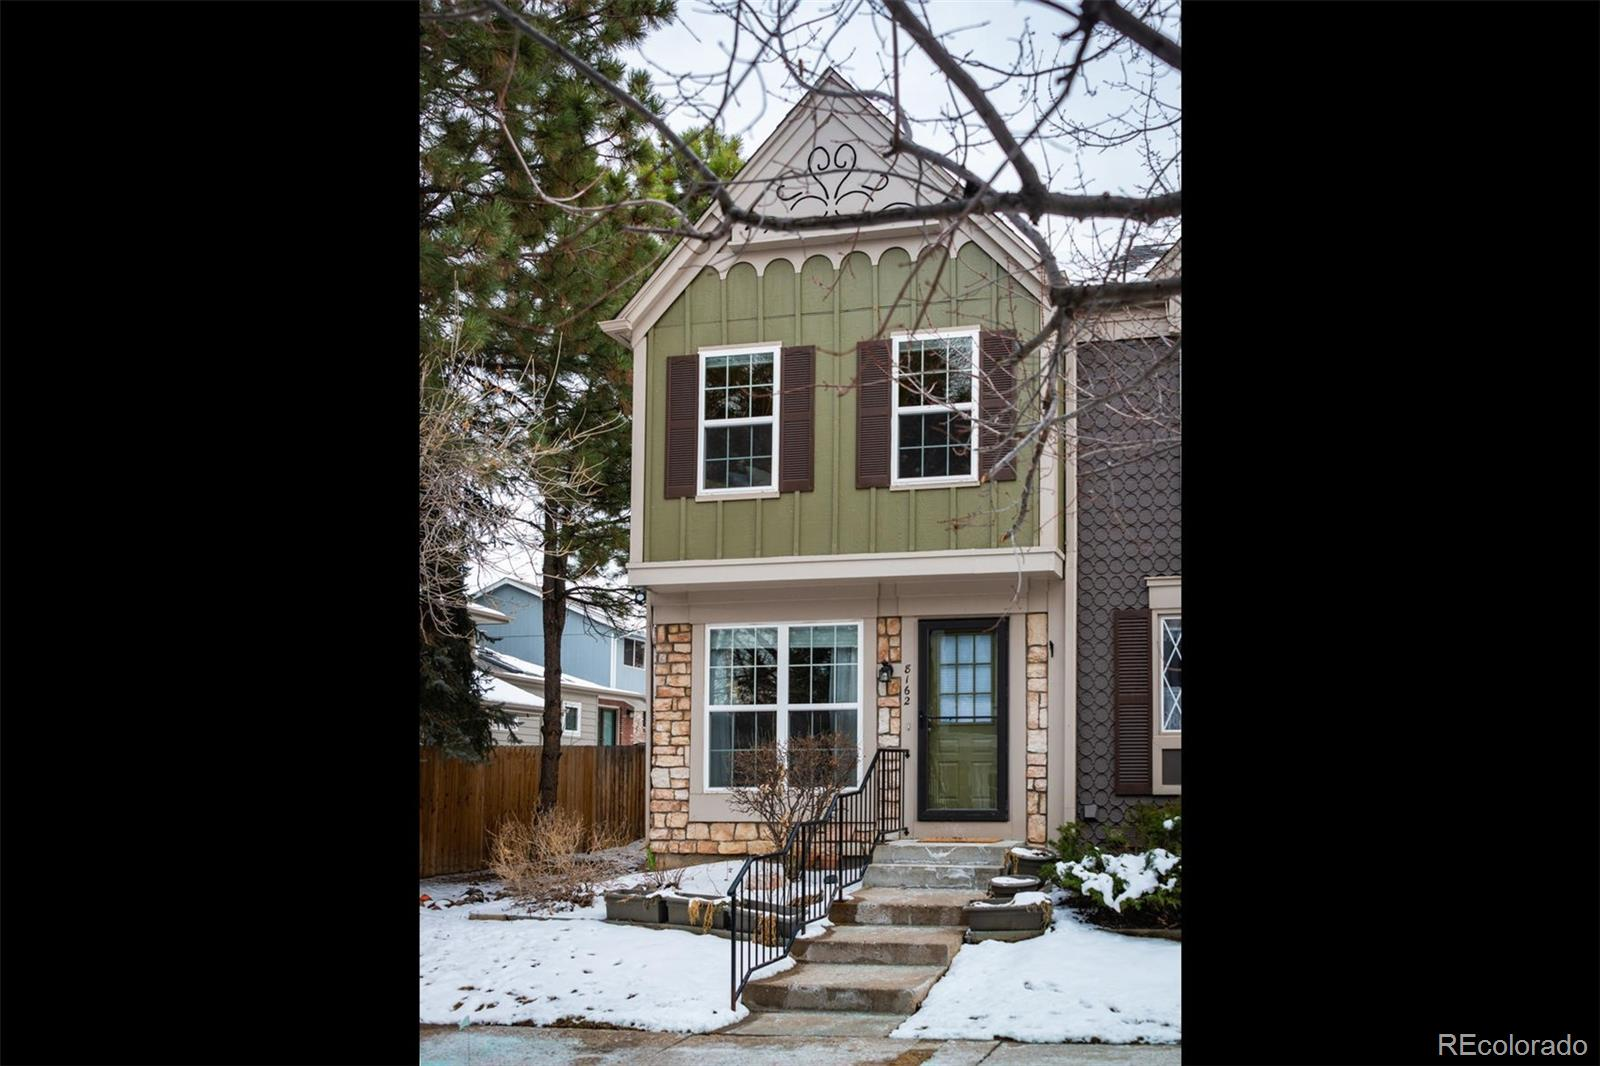 MLS# 9090000 - 24 - 8162 S Fillmore Way, Centennial, CO 80122